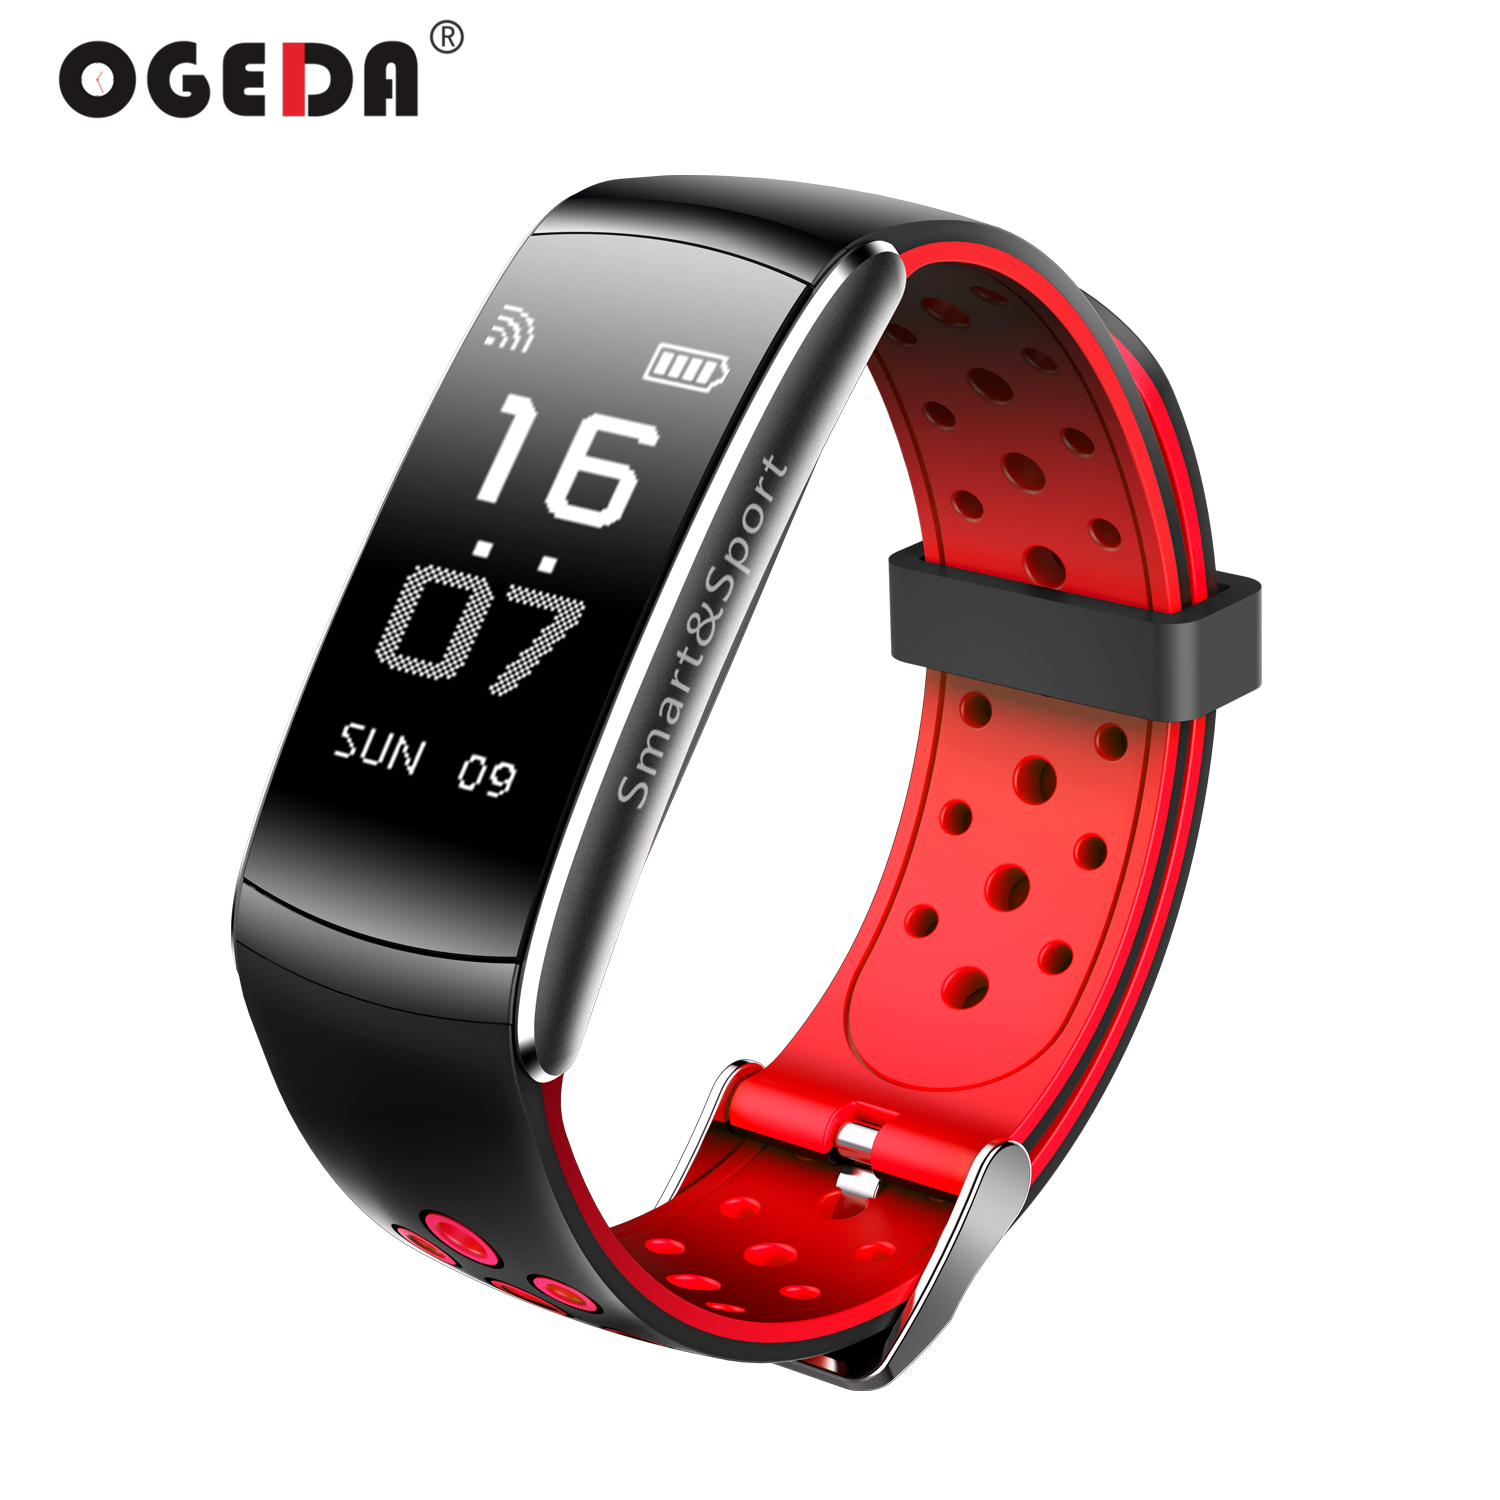 New OGEDA Smart Watch Women Q8 Heart Rate Monitor IP68 Waterproof Fitness Tracker Blood Pressure Bluetooth for Android iPhone